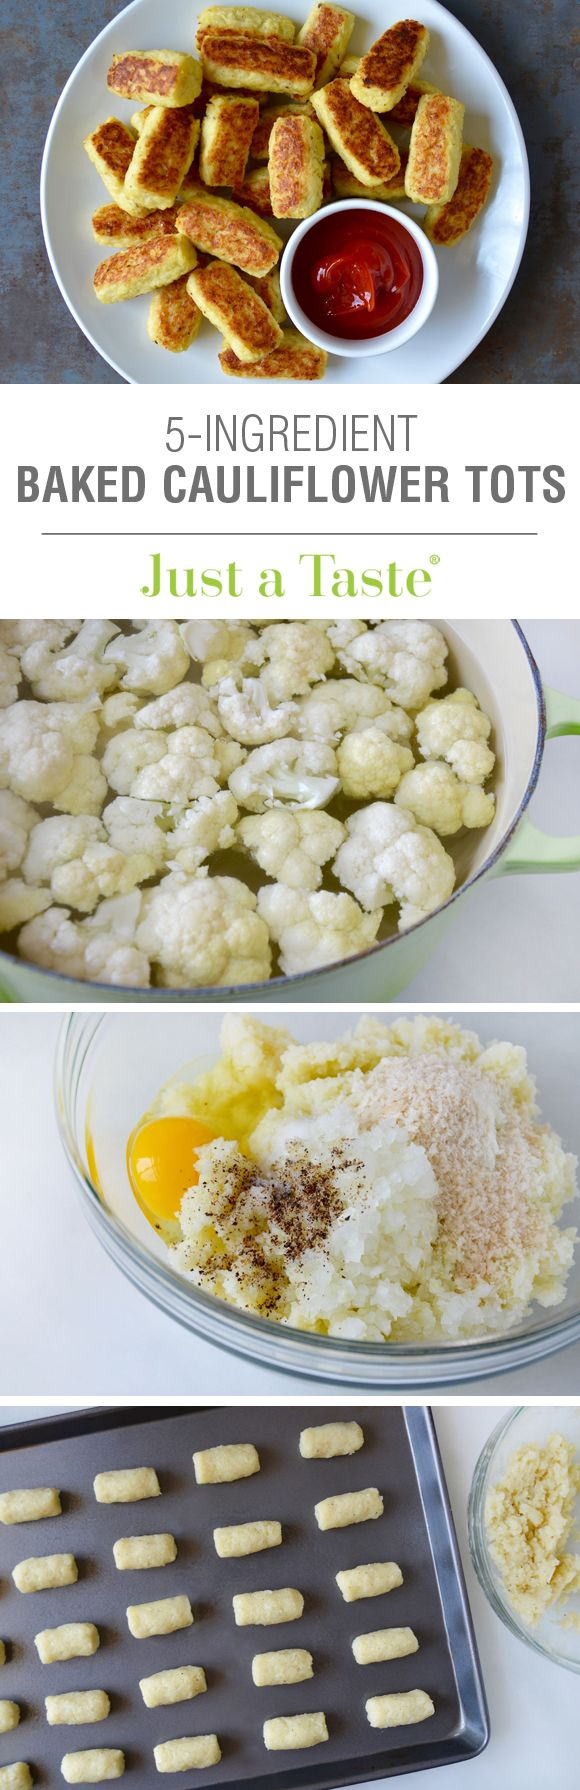 5-Ingredient Baked Cauliflower Tots #recipe via justataste.com